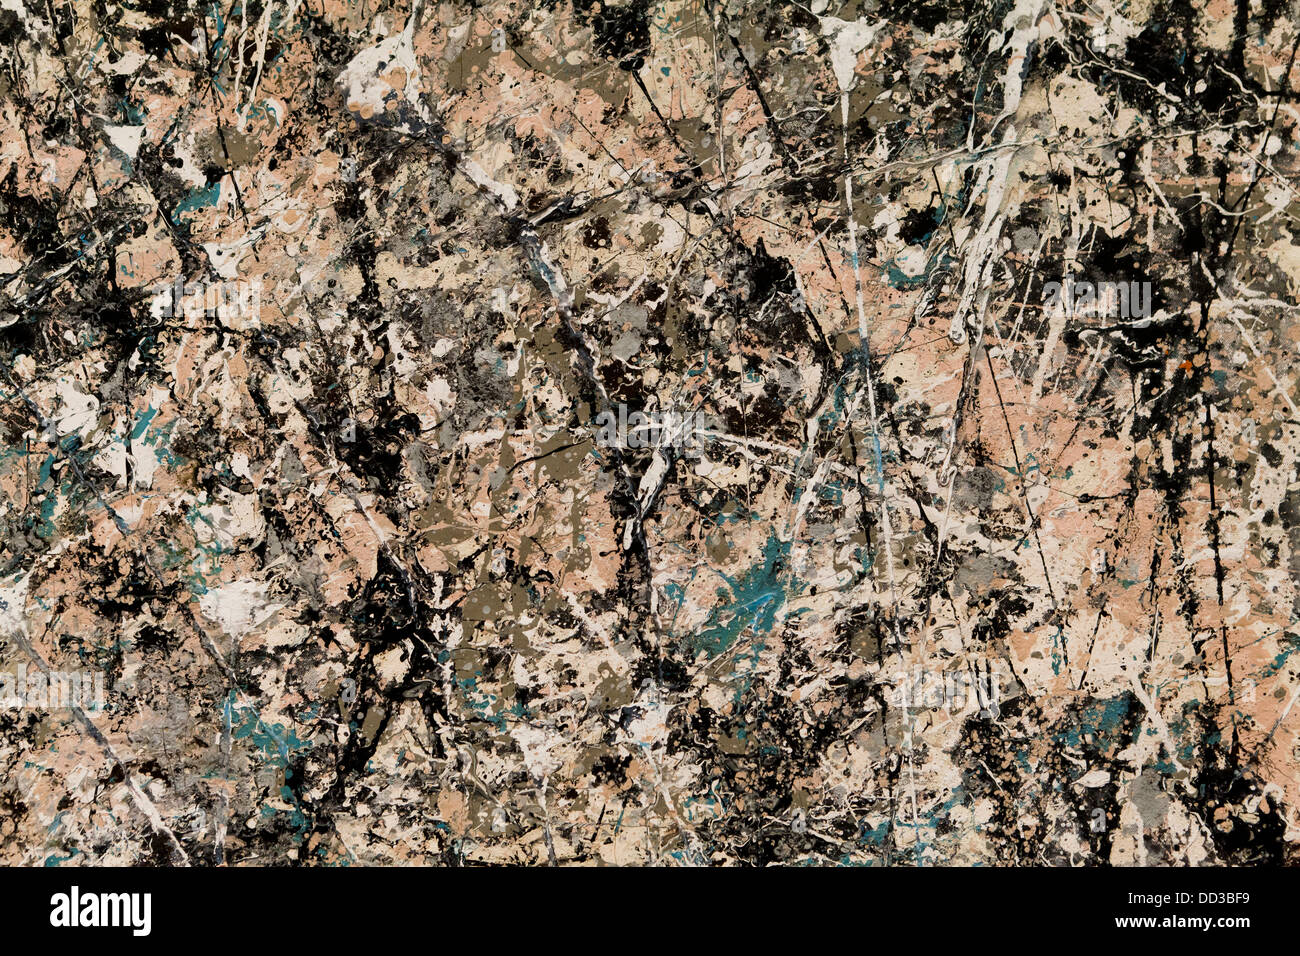 jackson pollock's number 1 1950 lavender Jackson pollock's mythic reputation rests largely on the artistic breakthrough  jackson pollock: mural, poster # 747943  including number 1, 1950 (lavender.